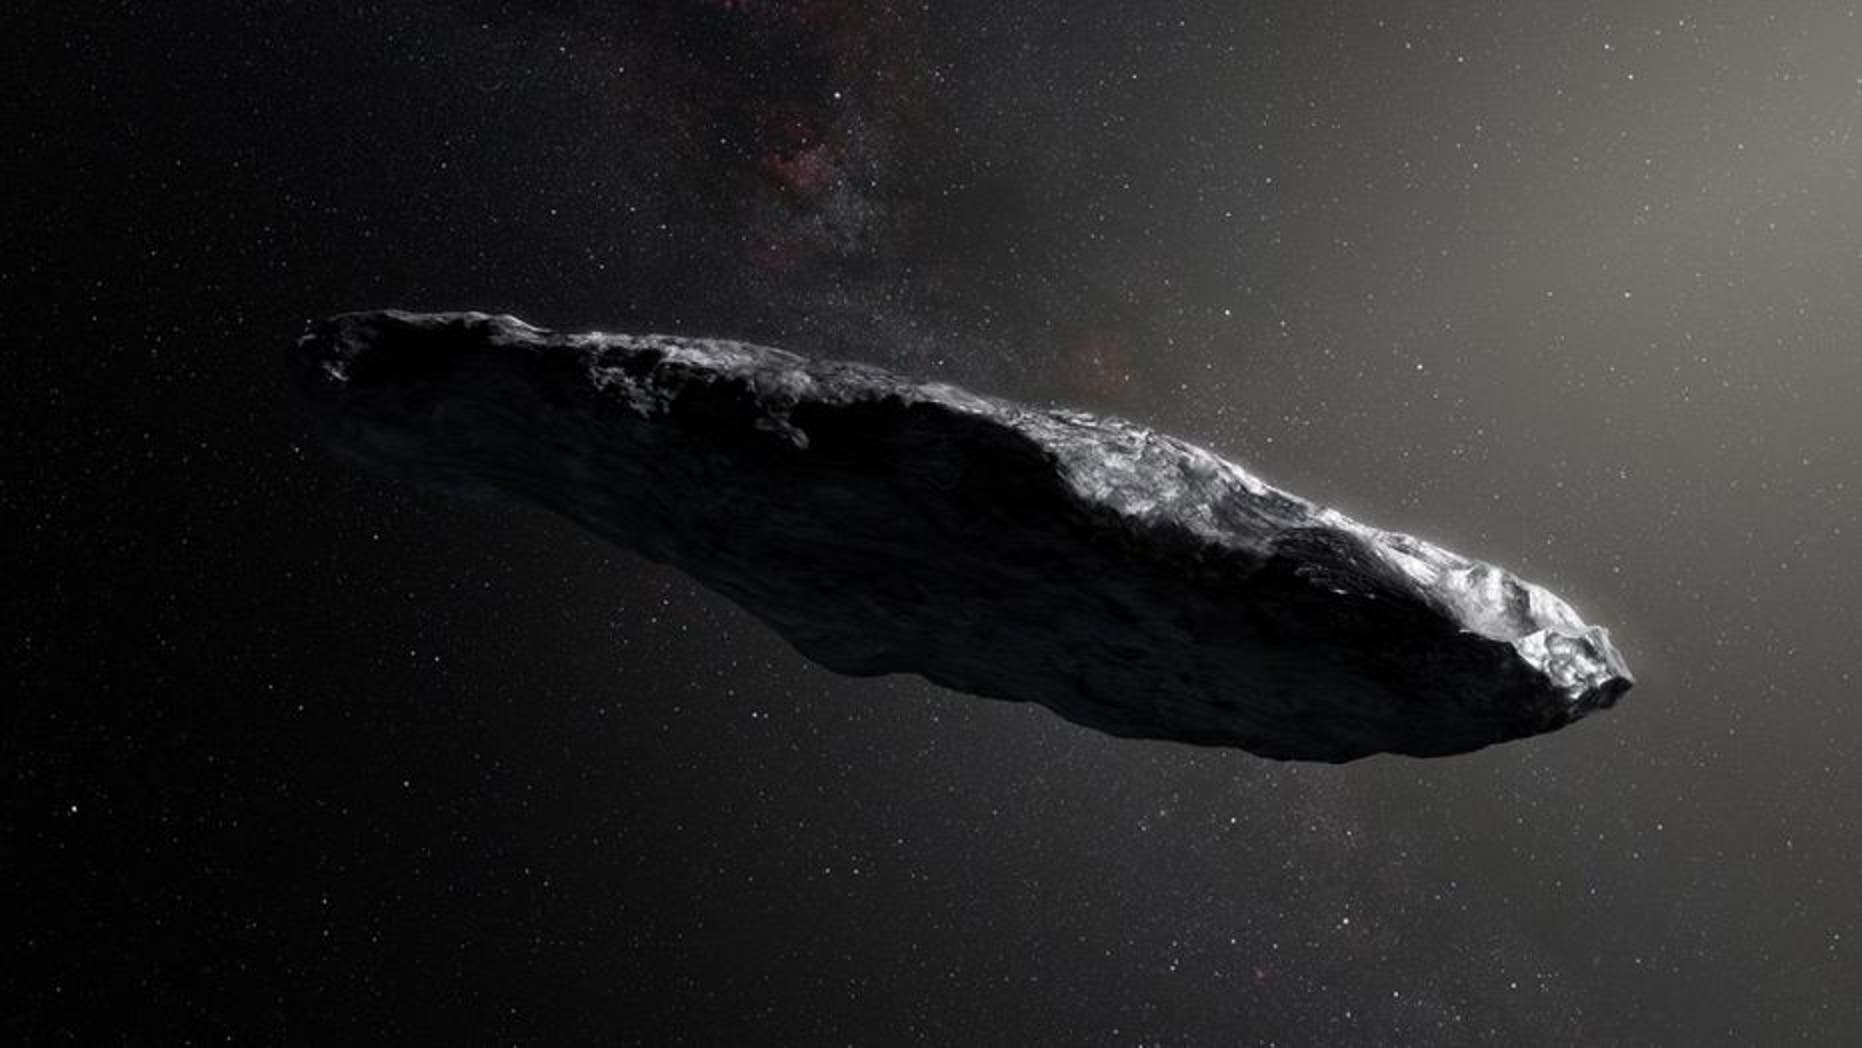 Cigar-shaped comet may actually be an alien probe, Harvard scientists suggest